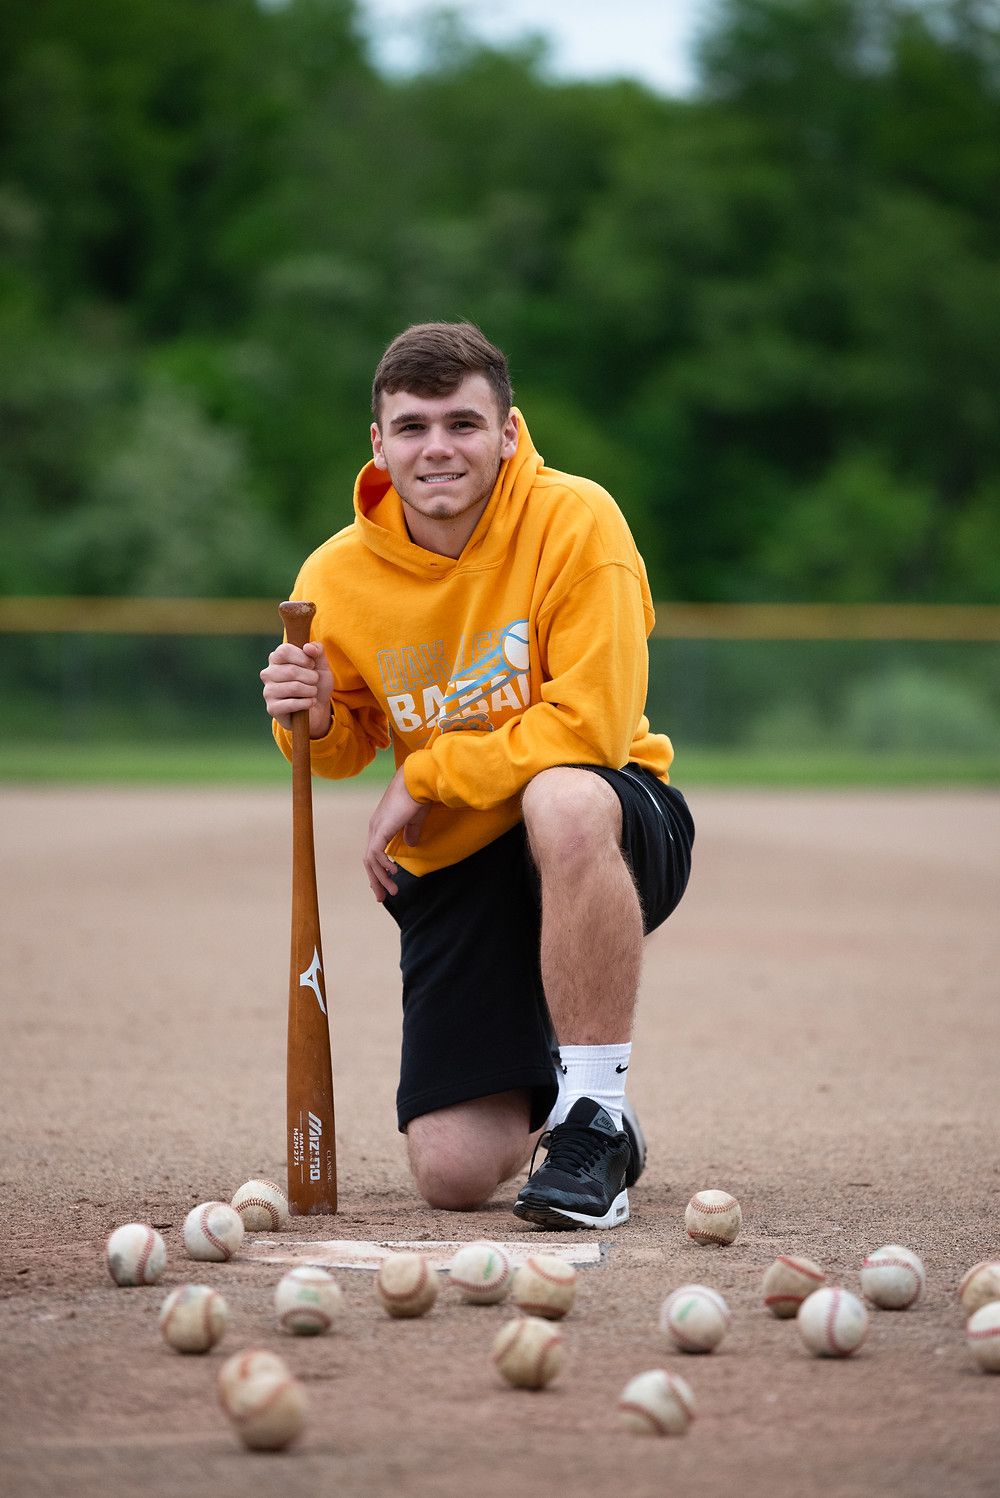 Senior guy kneeling on baseball field holding his bat and surrounded by baseballs during his photoshoot